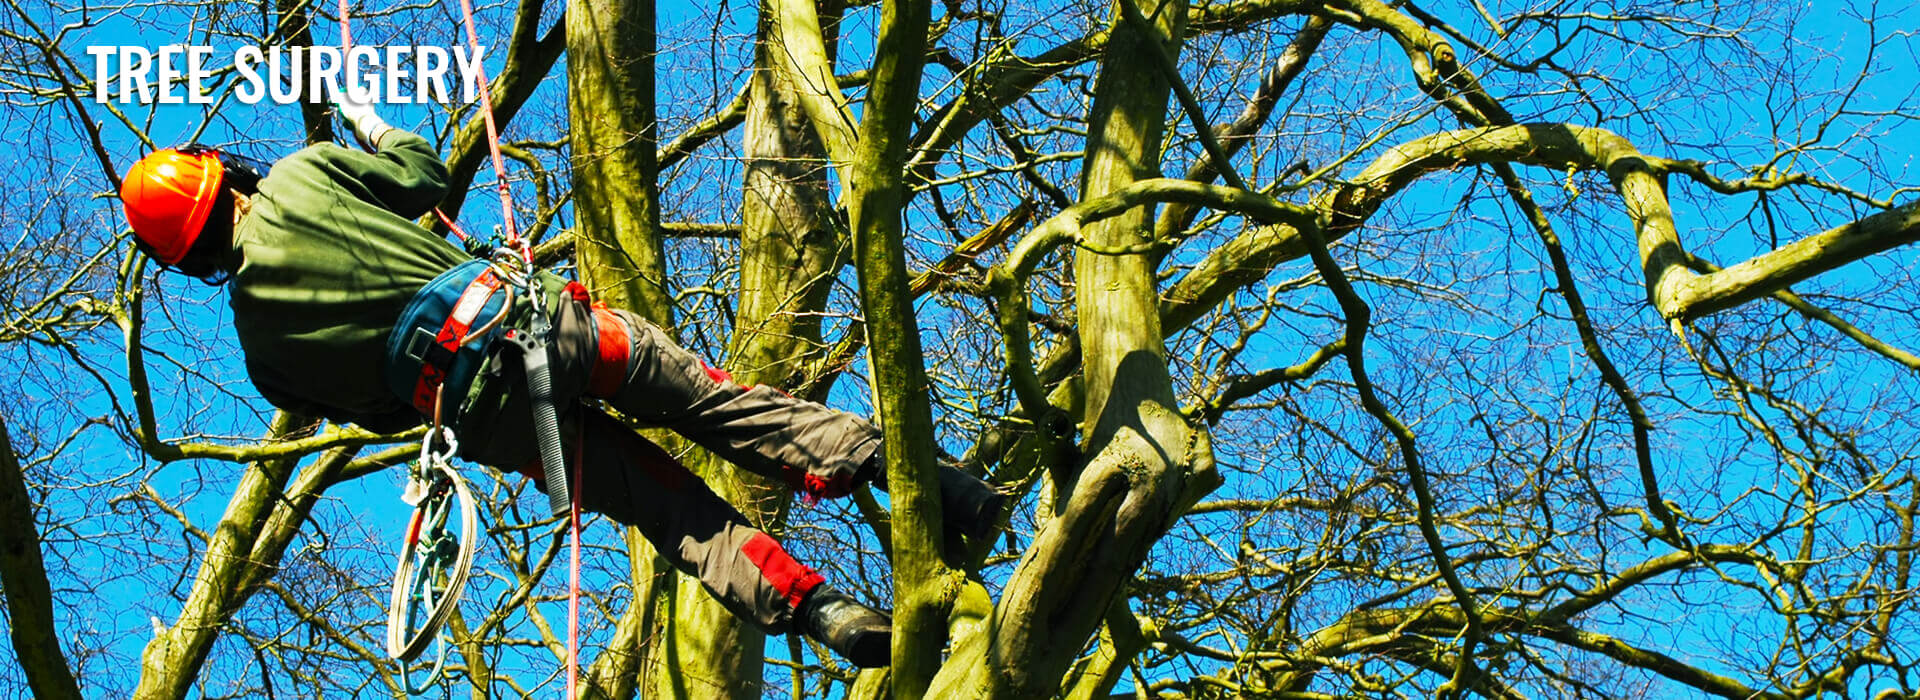 tree surgery ruxley landscapes bexley bromley kent